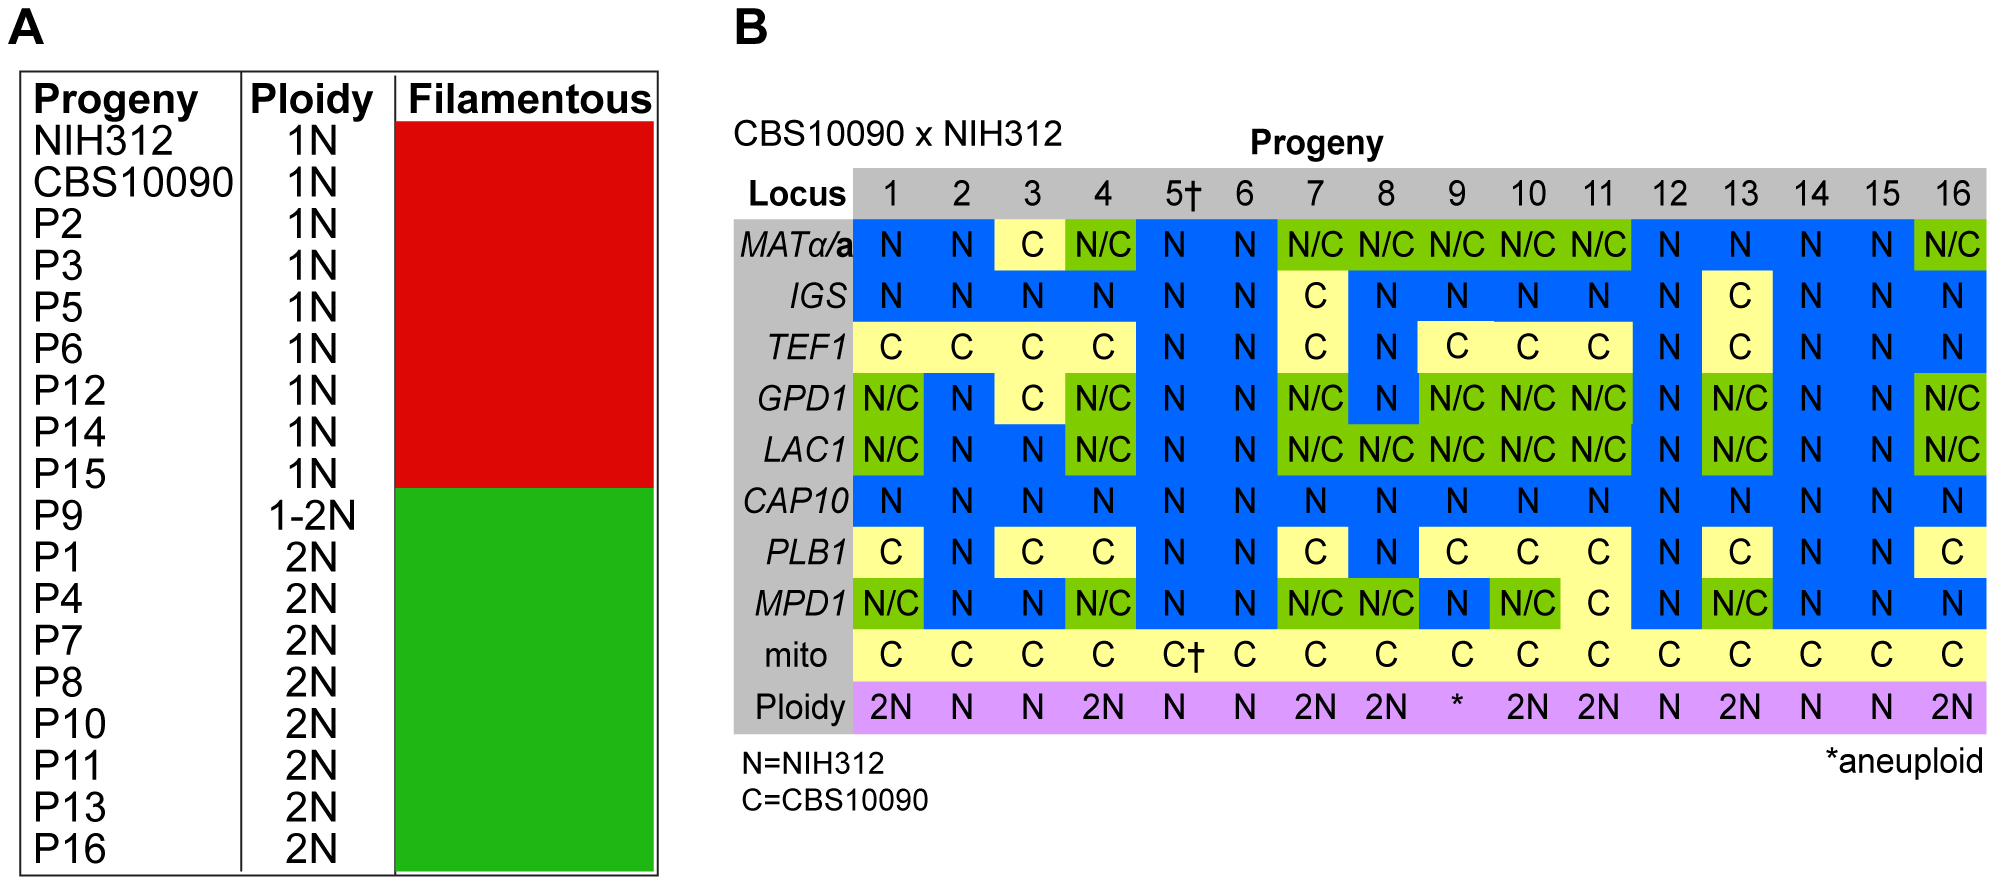 Molecular characterisation of progeny from outgroup cross CBS10090 x NIH312.